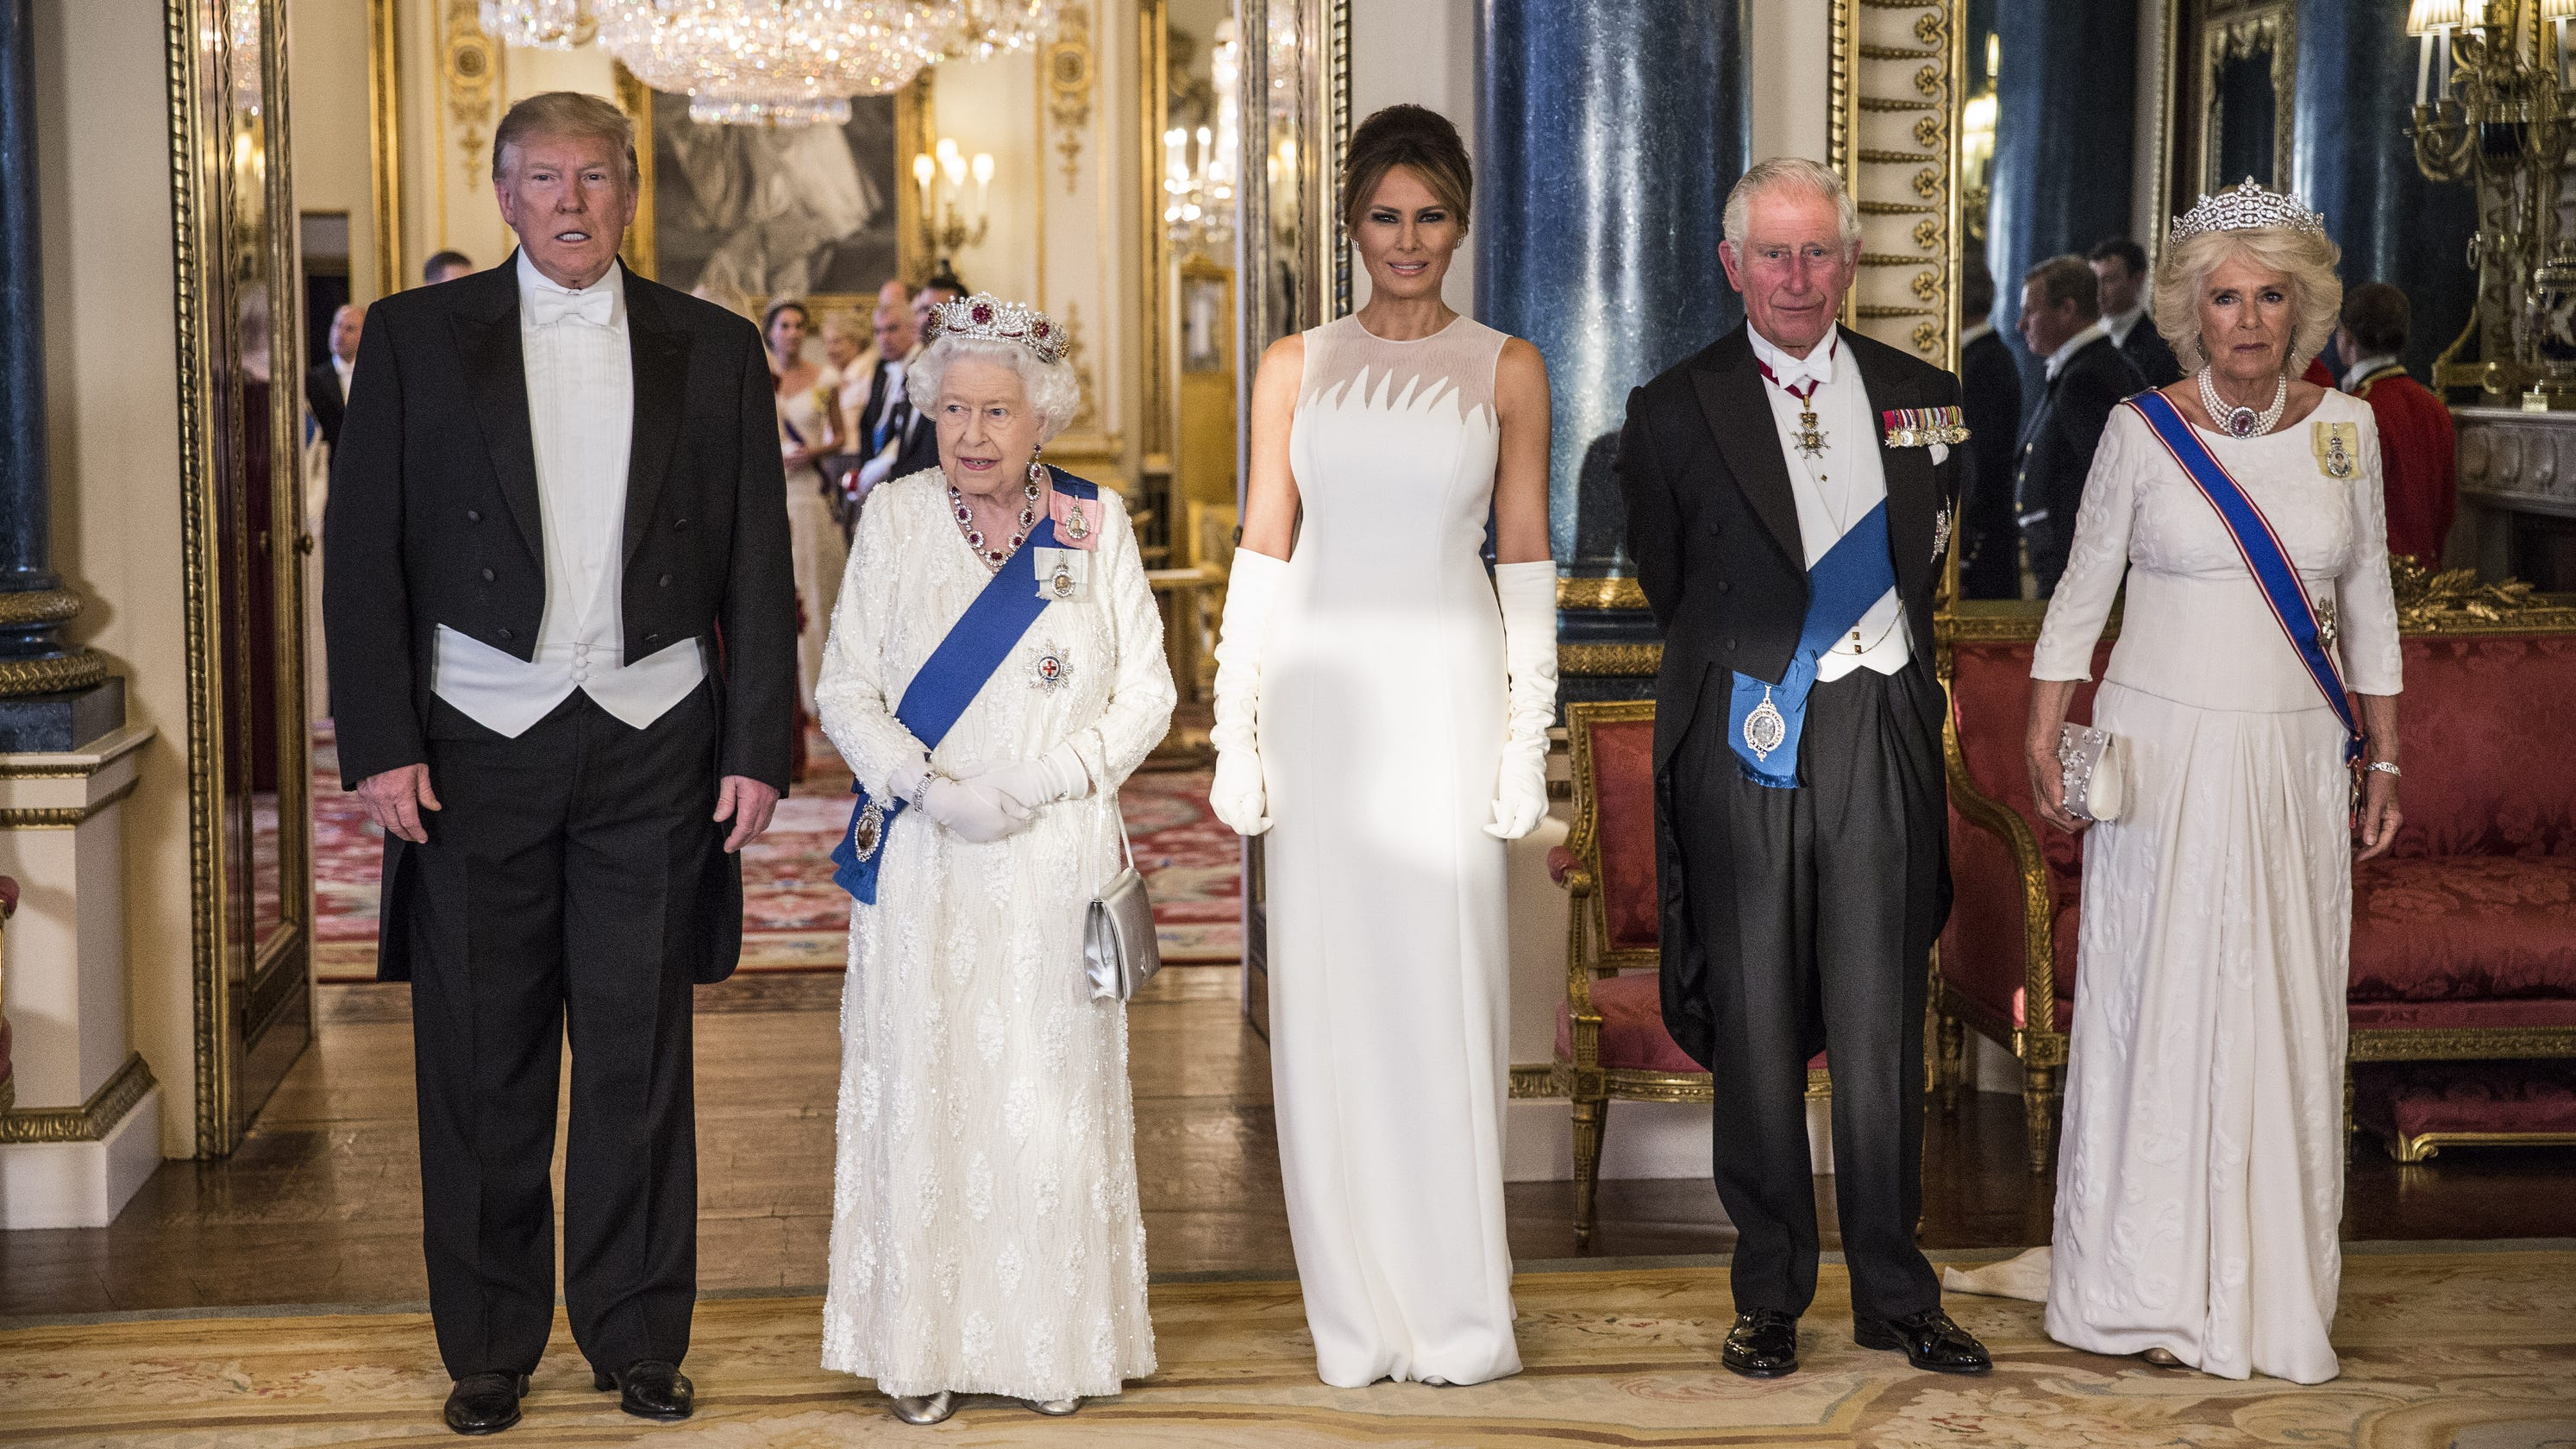 Trump's 'ill-fitting' tux mocked on Twitter after queen's banquet